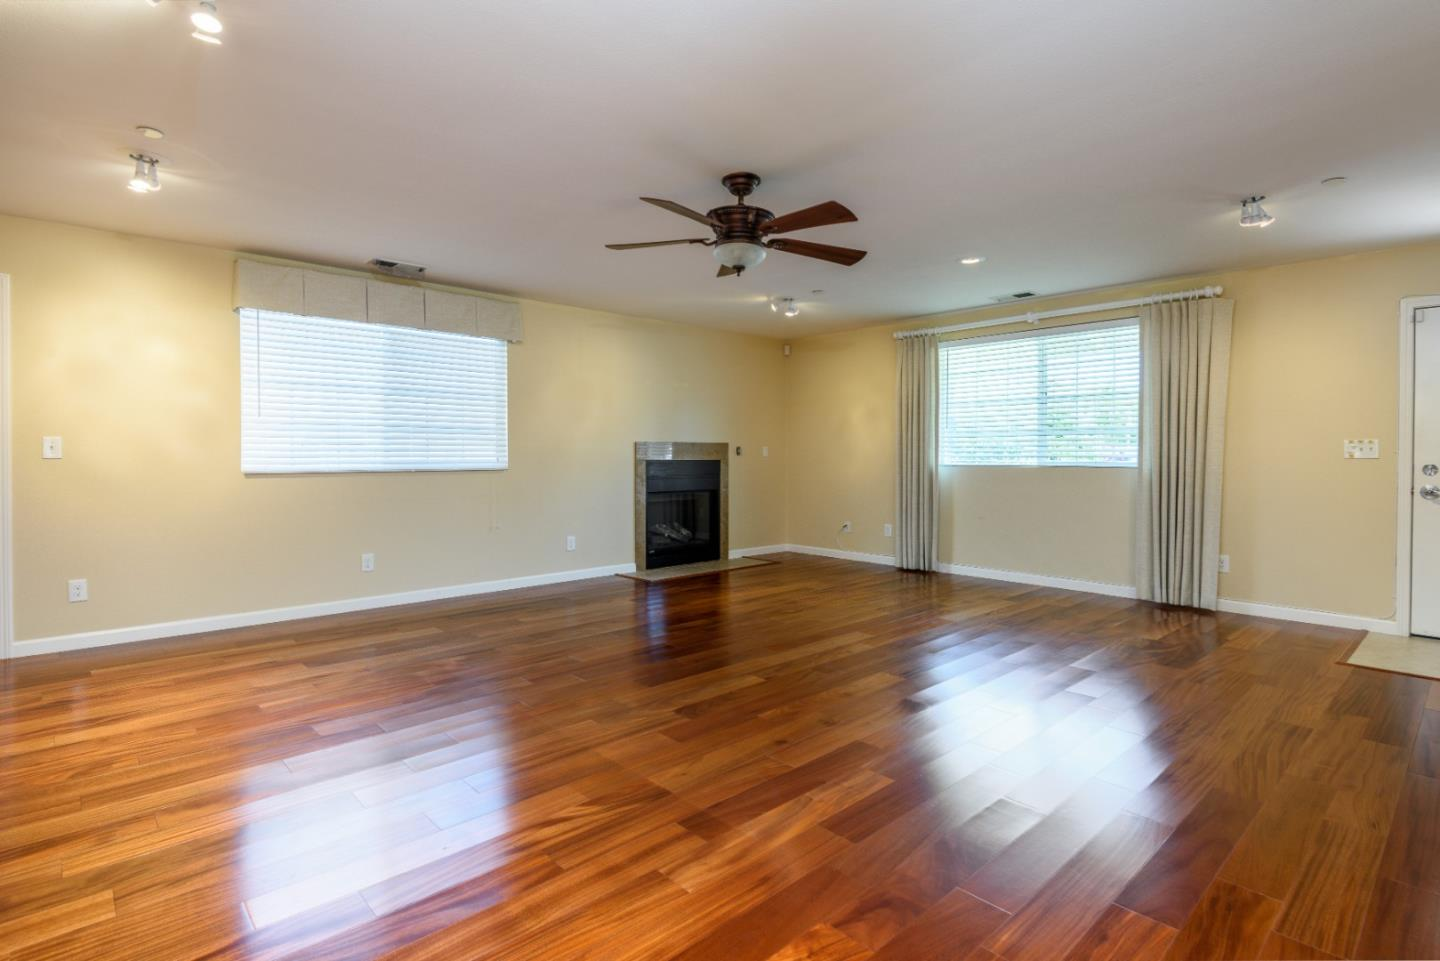 609 Stanford Ave Redwood City Ca 94063 Sotheby S